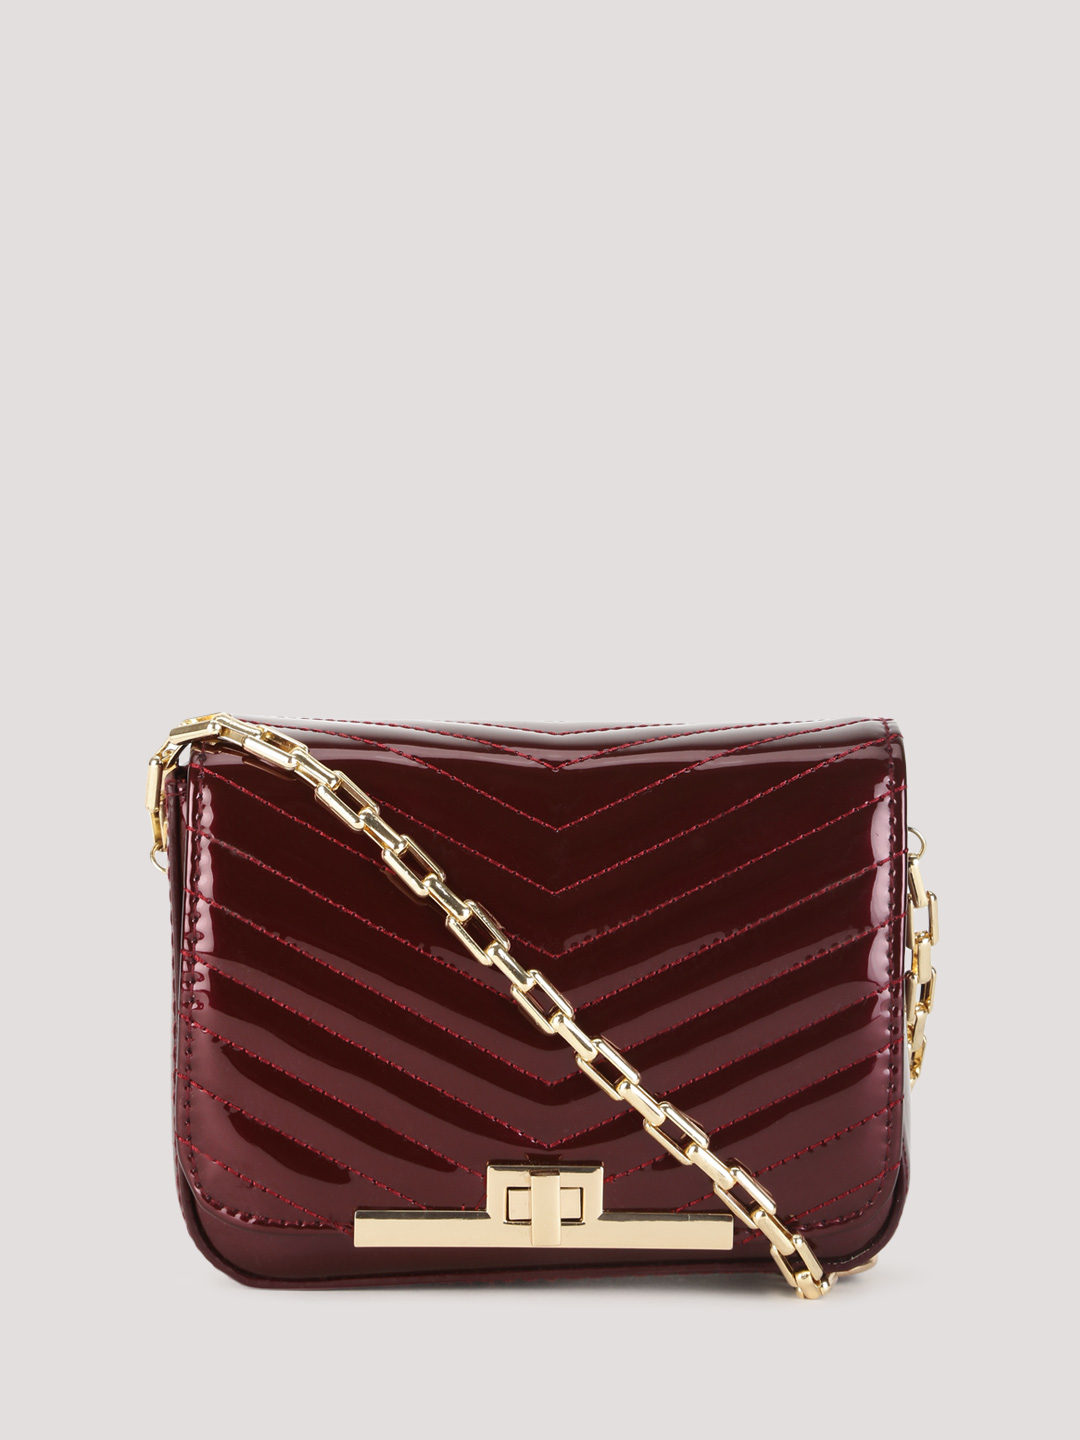 New Look Dark Burgundy Quilted Patent Sling Bag 1